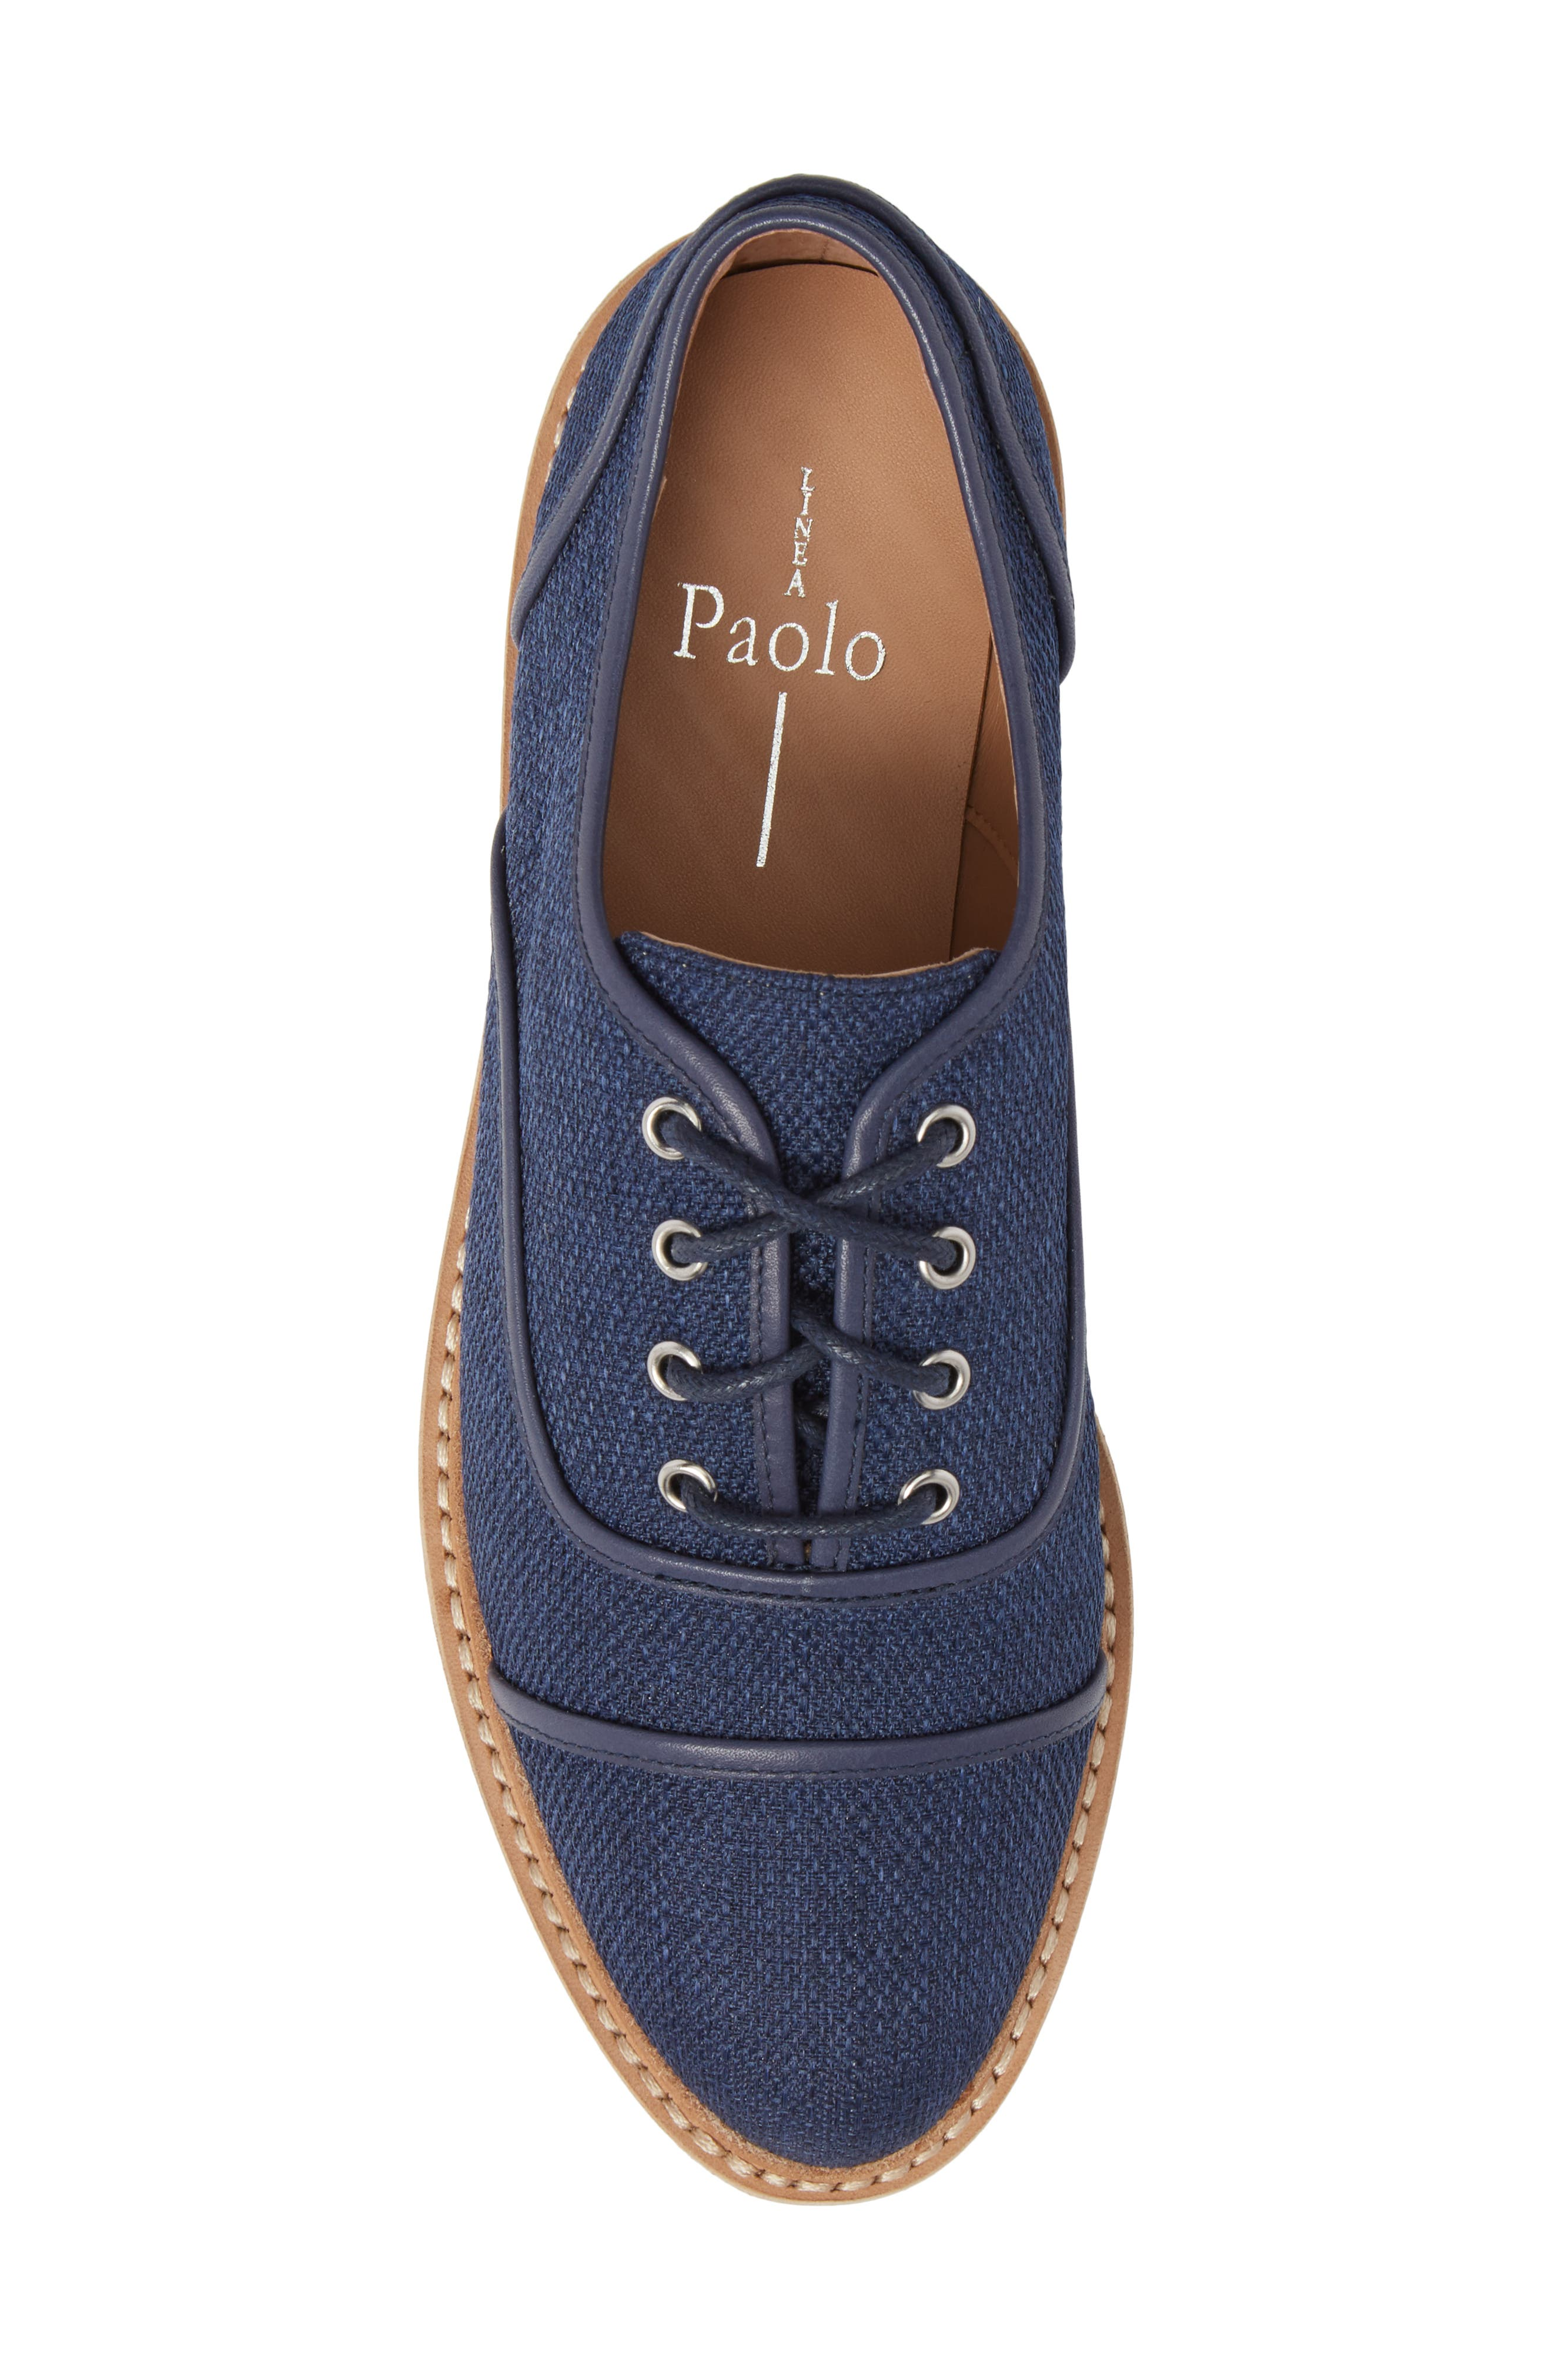 Mavis Cap Toe Platform Sneaker,                             Alternate thumbnail 5, color,                             Blue Fabric